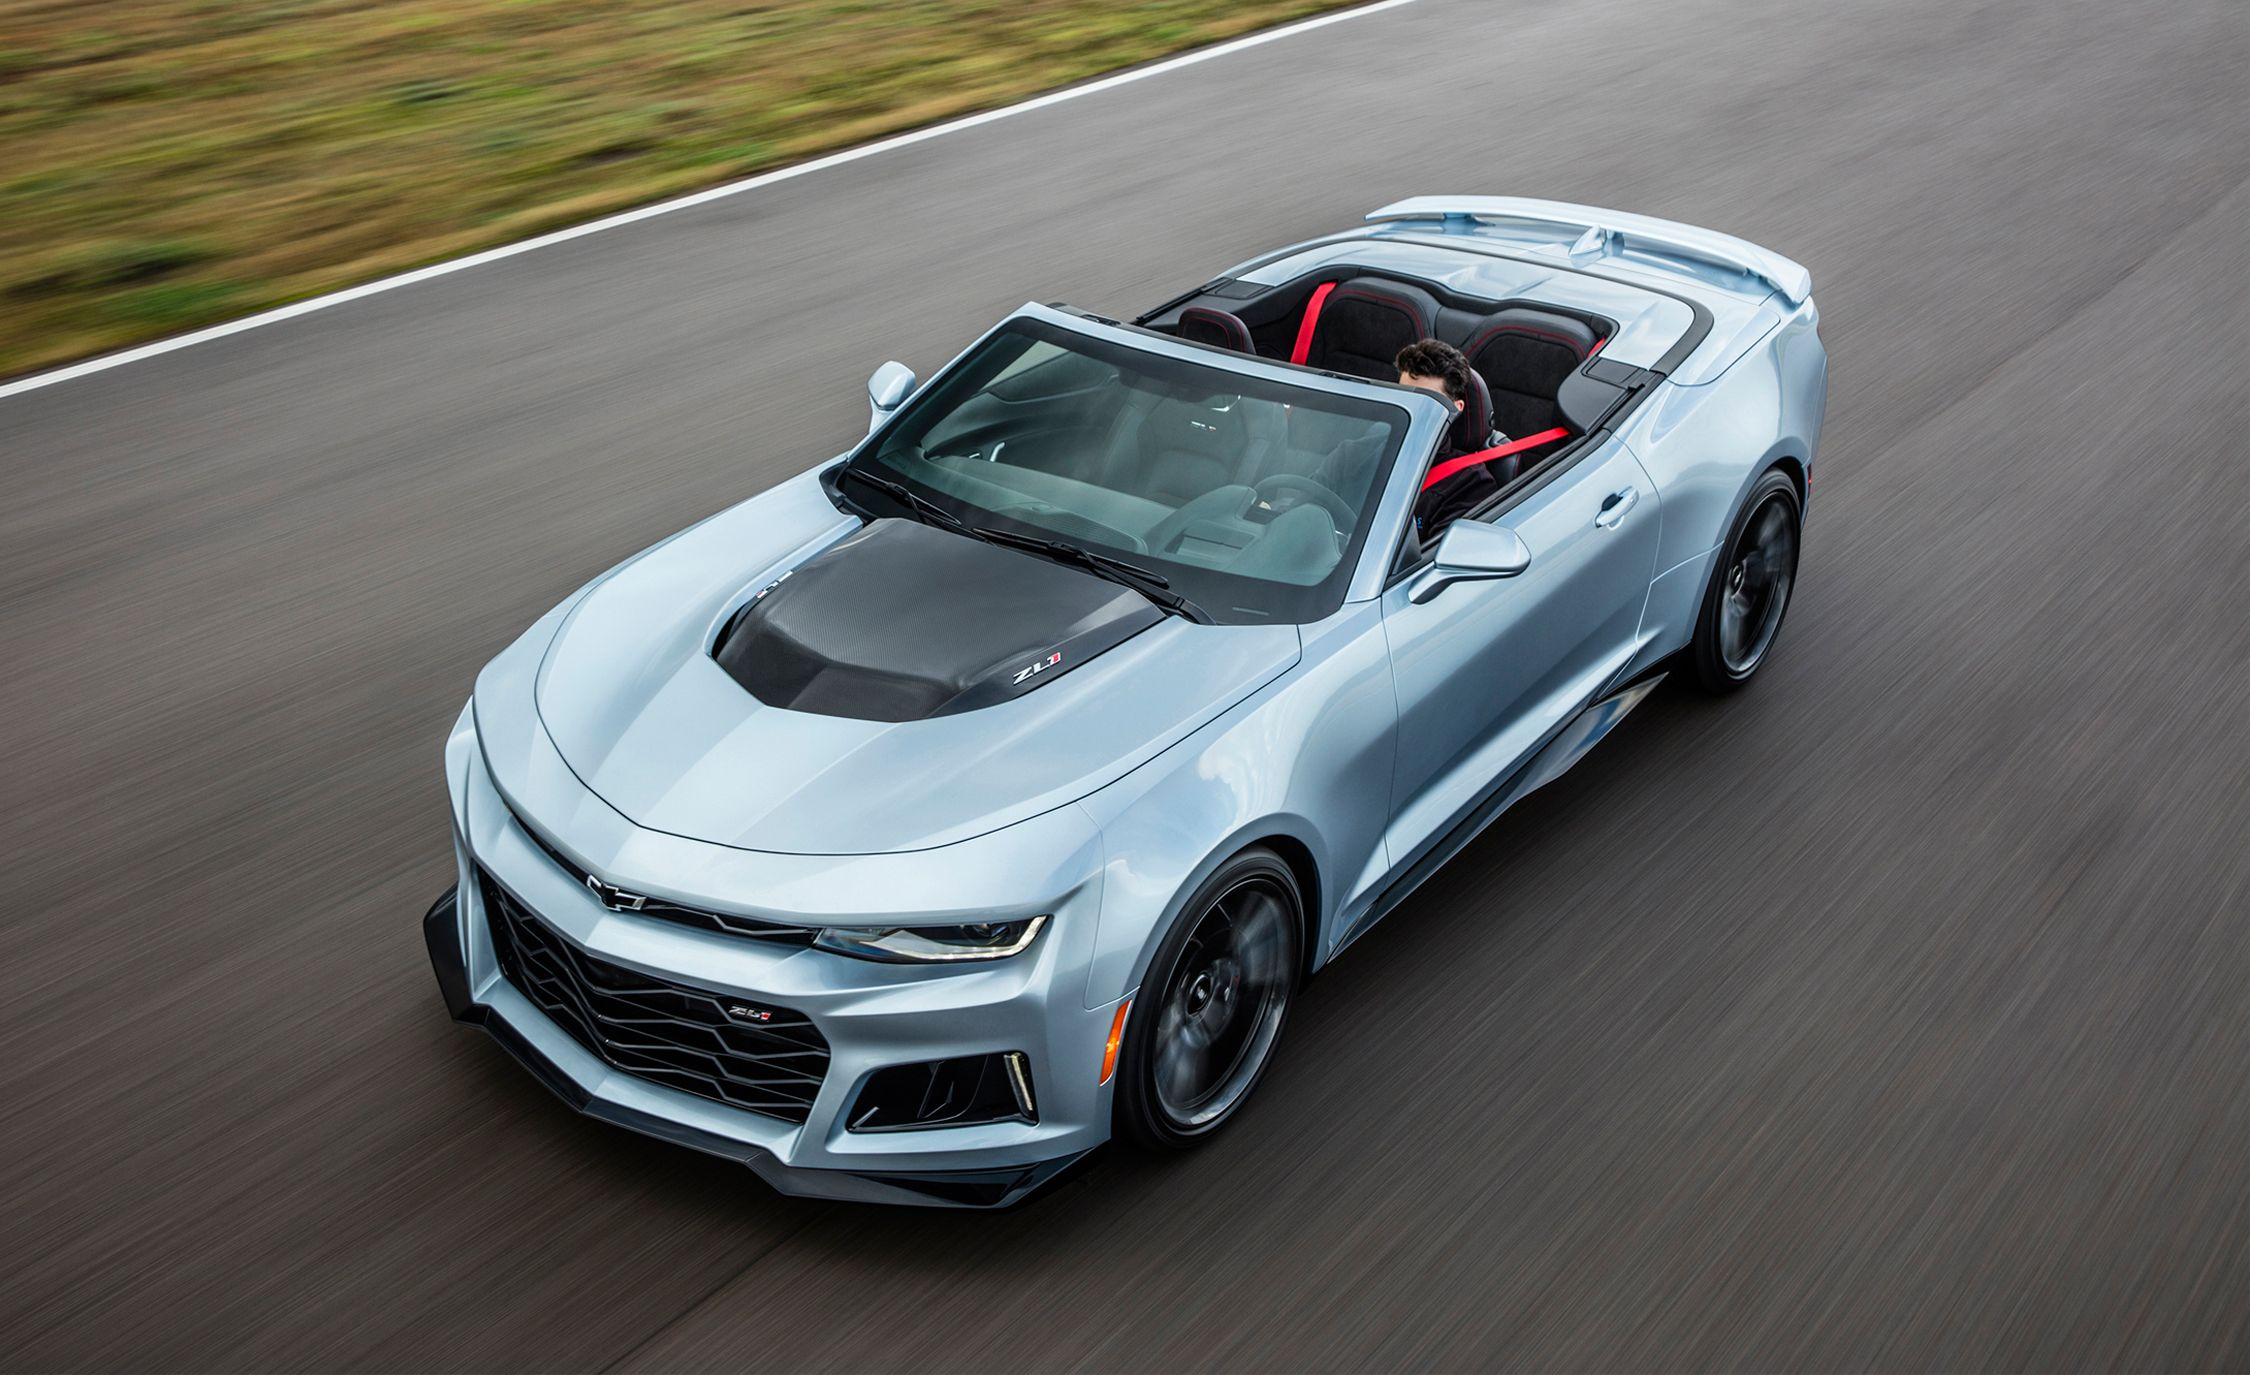 2017 Chevrolet Camaro Zl1 Convertible First Drive Review Car And Driver